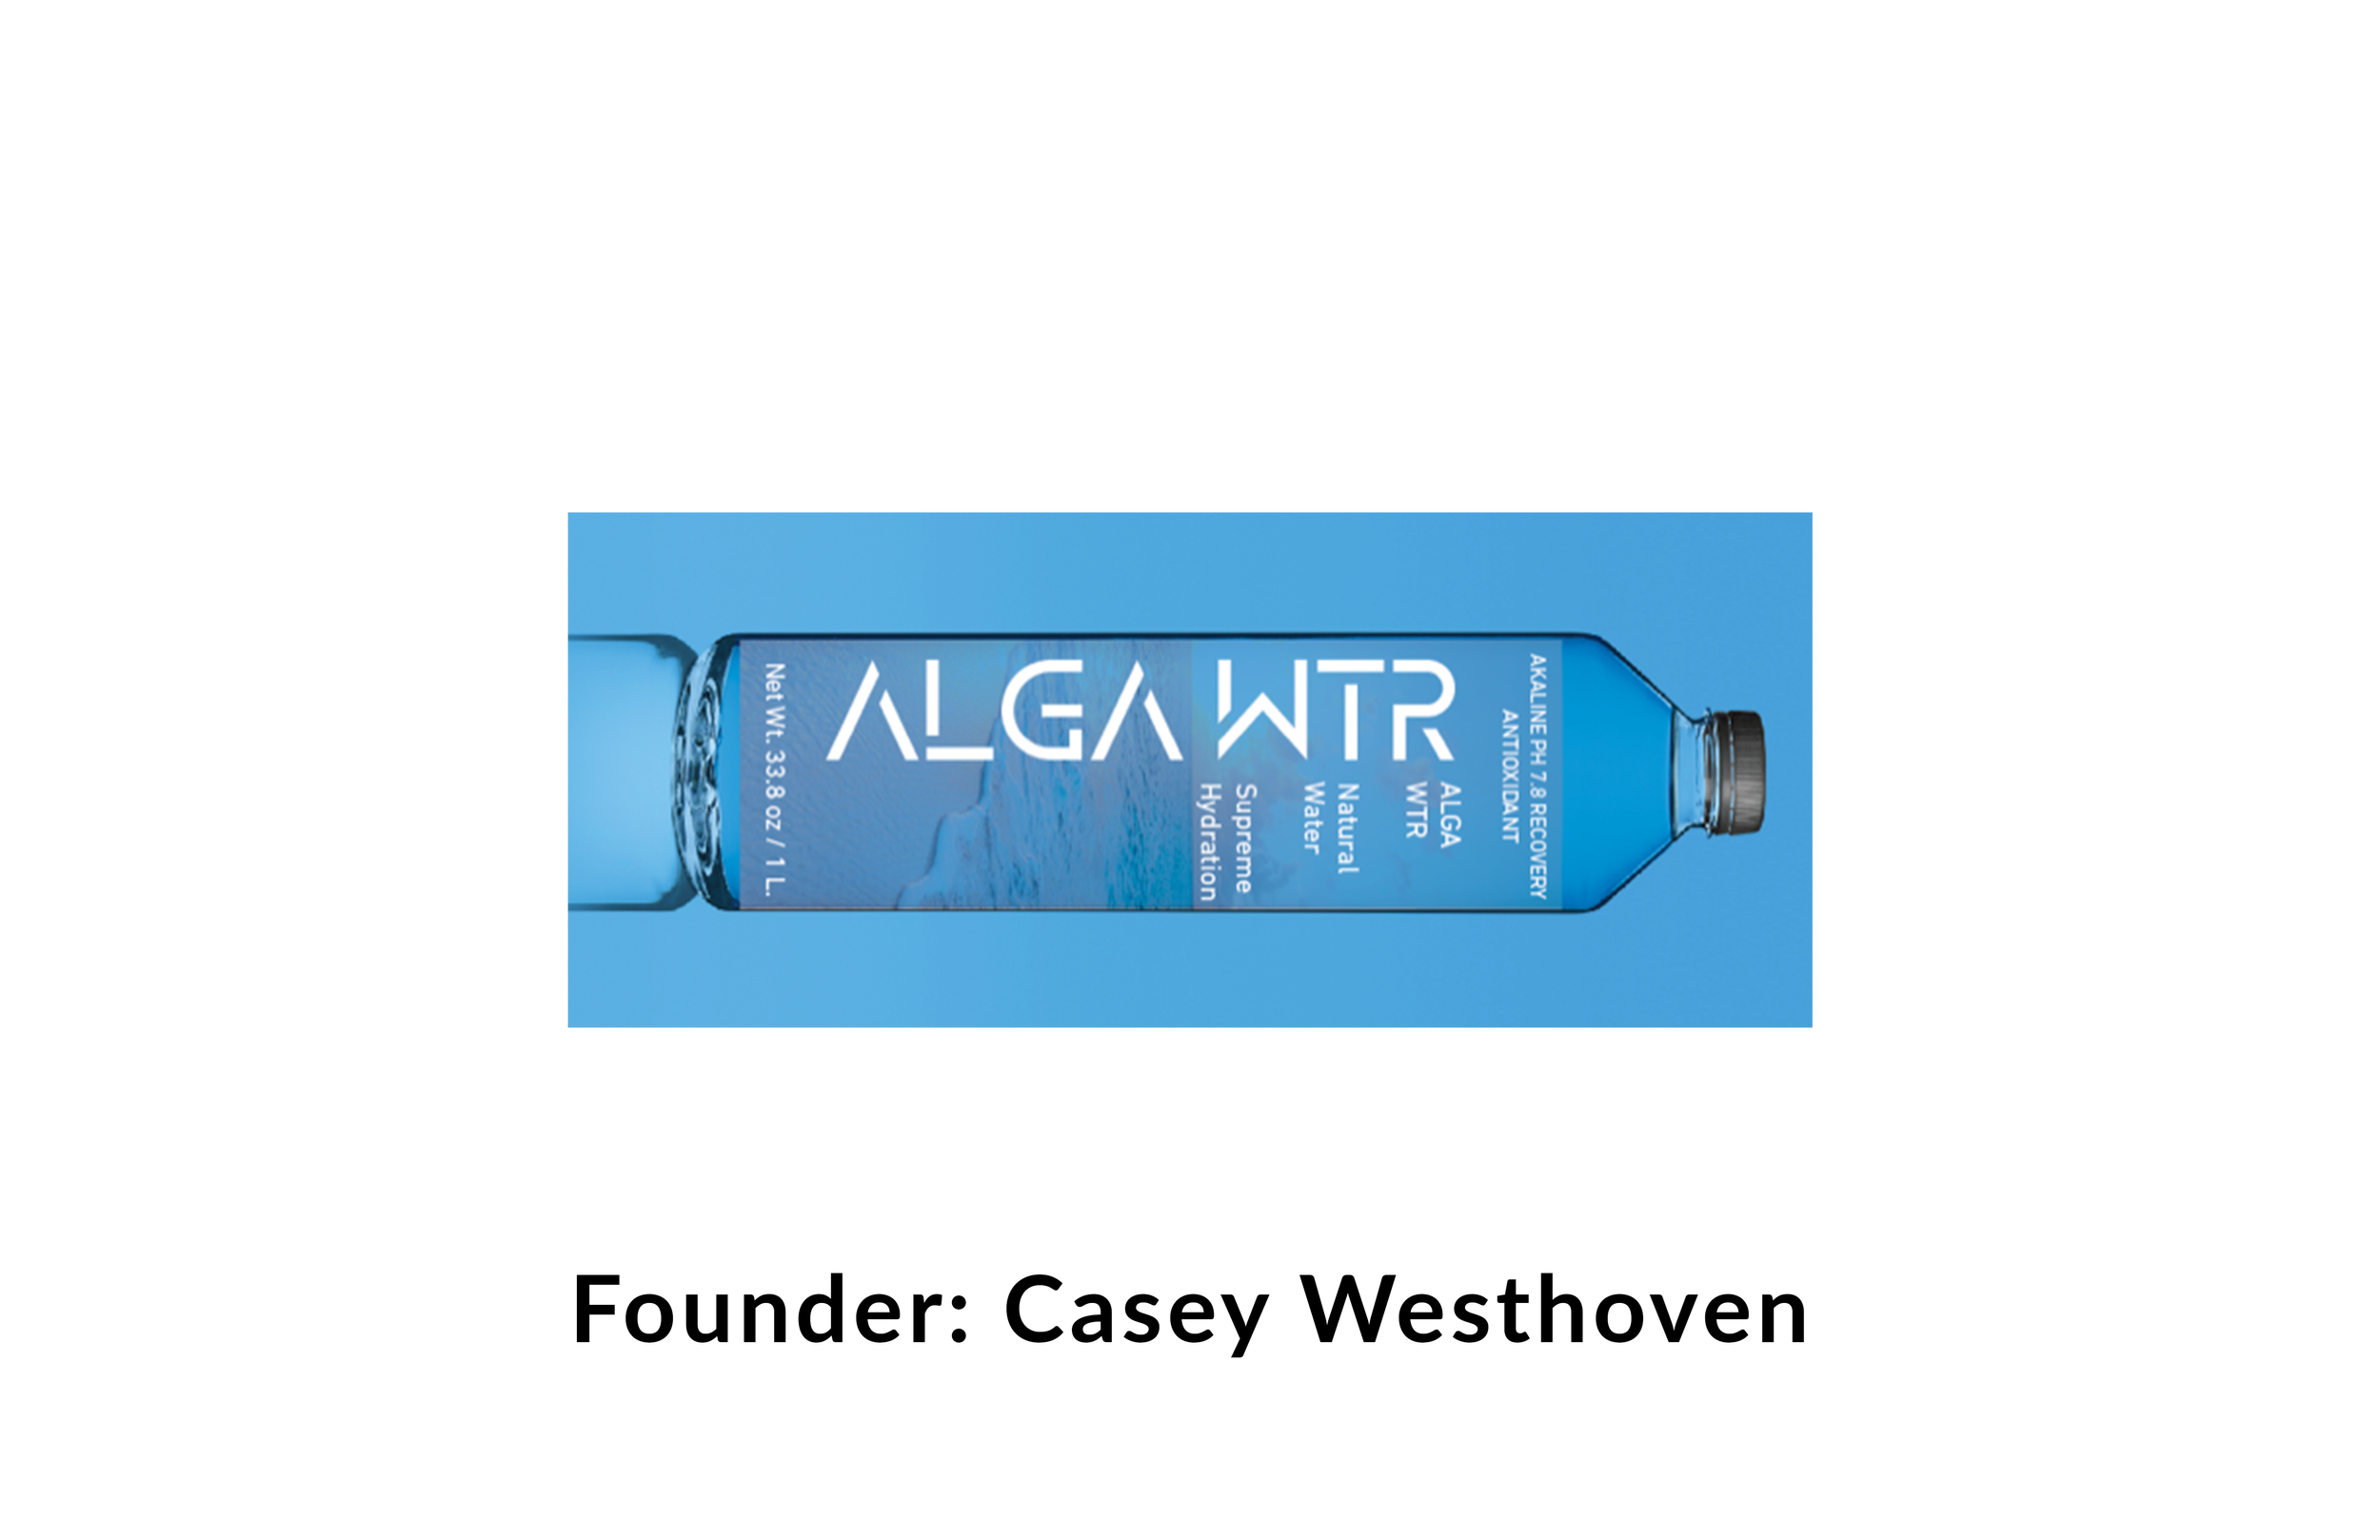 ALGA WTR - ALGA WTR is a functional water beverage enhanced with marine ingredients in order to hydrate you faster and keep you hydrated longer.